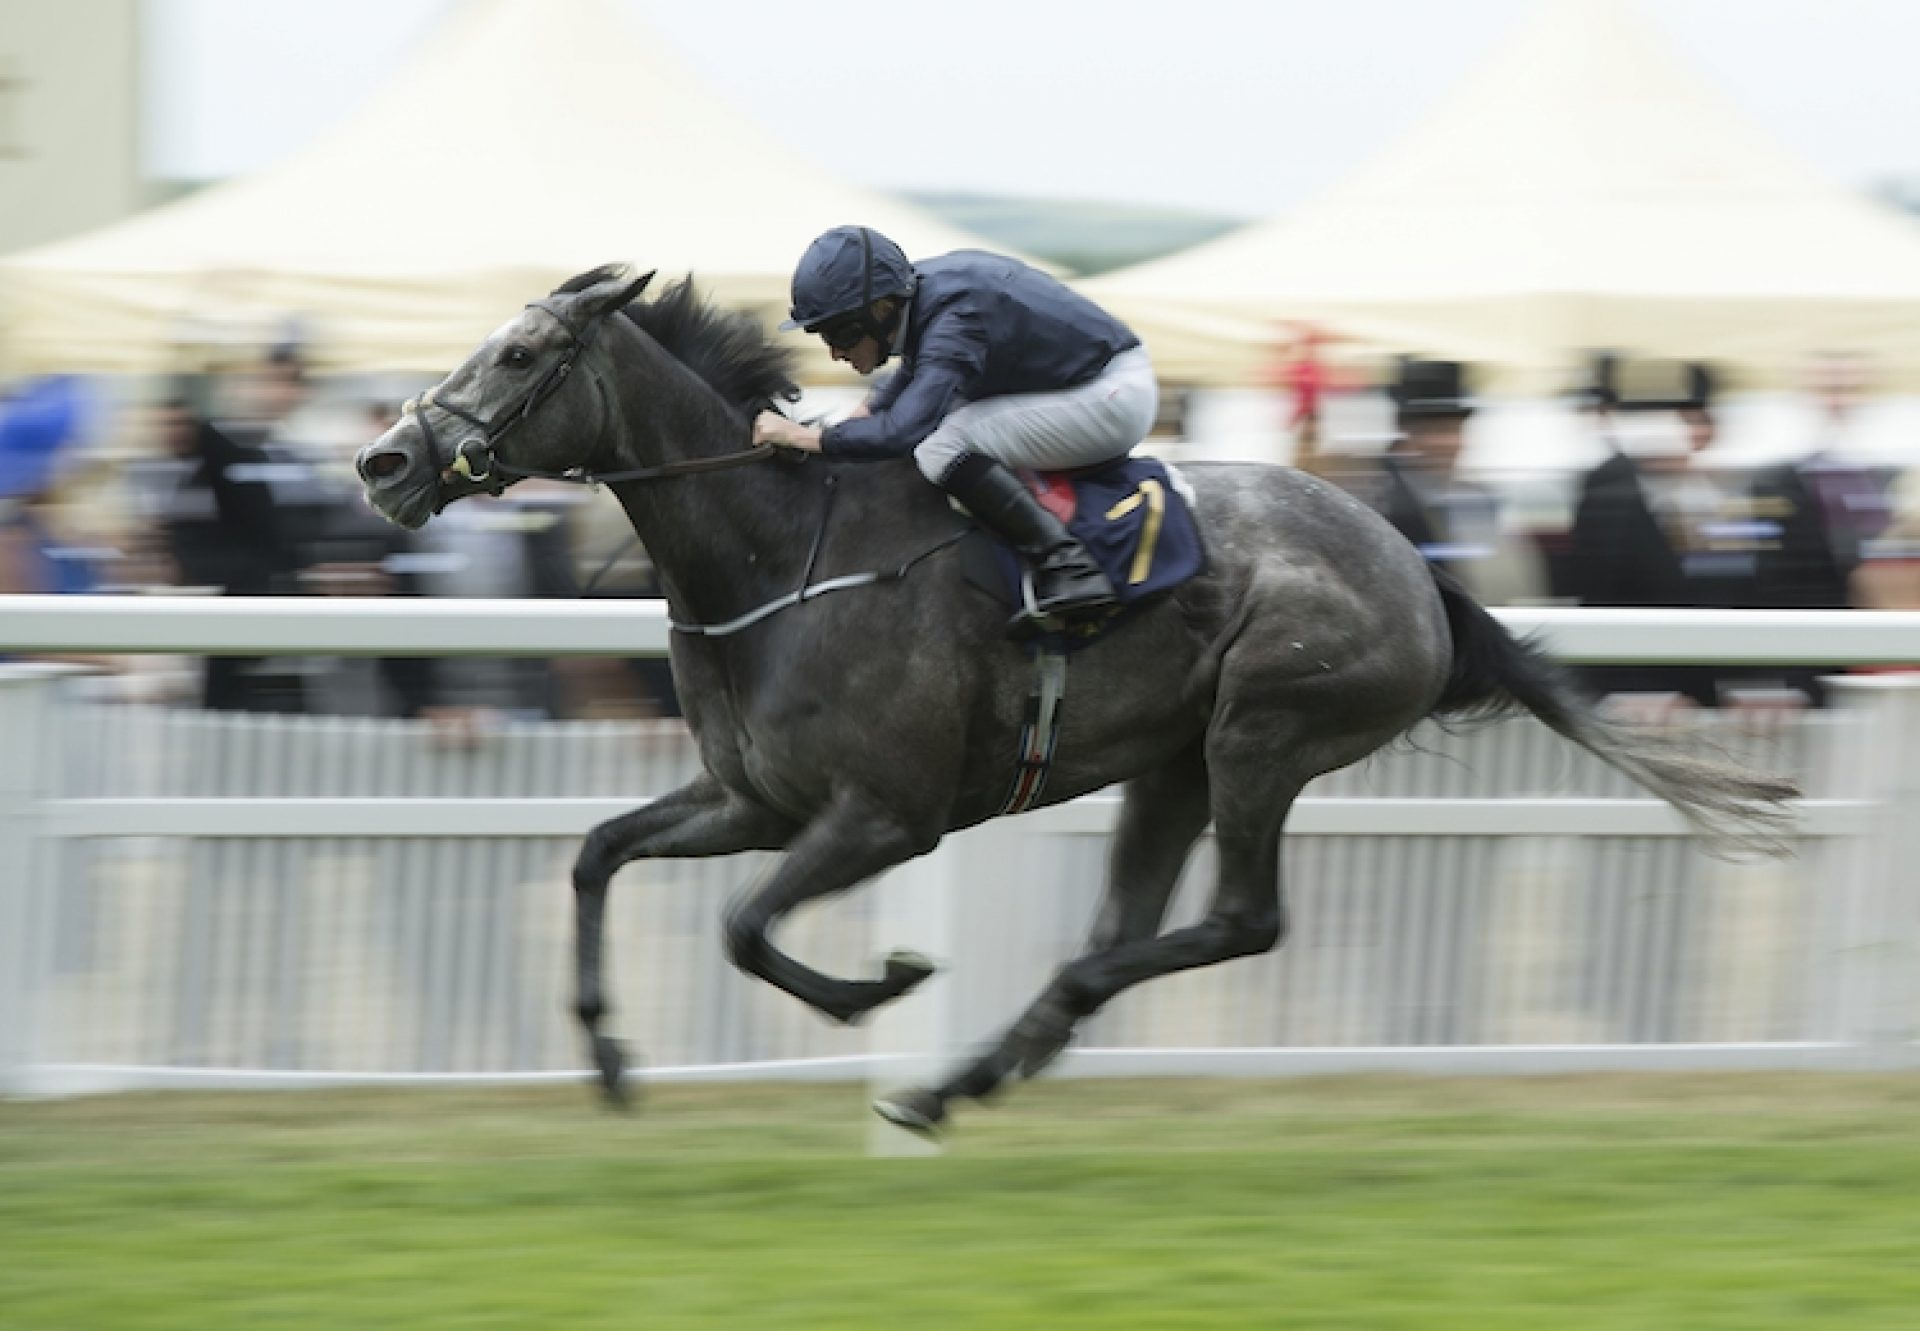 Winter (Galileo) winning the Coronation Stakes at Royal Ascot